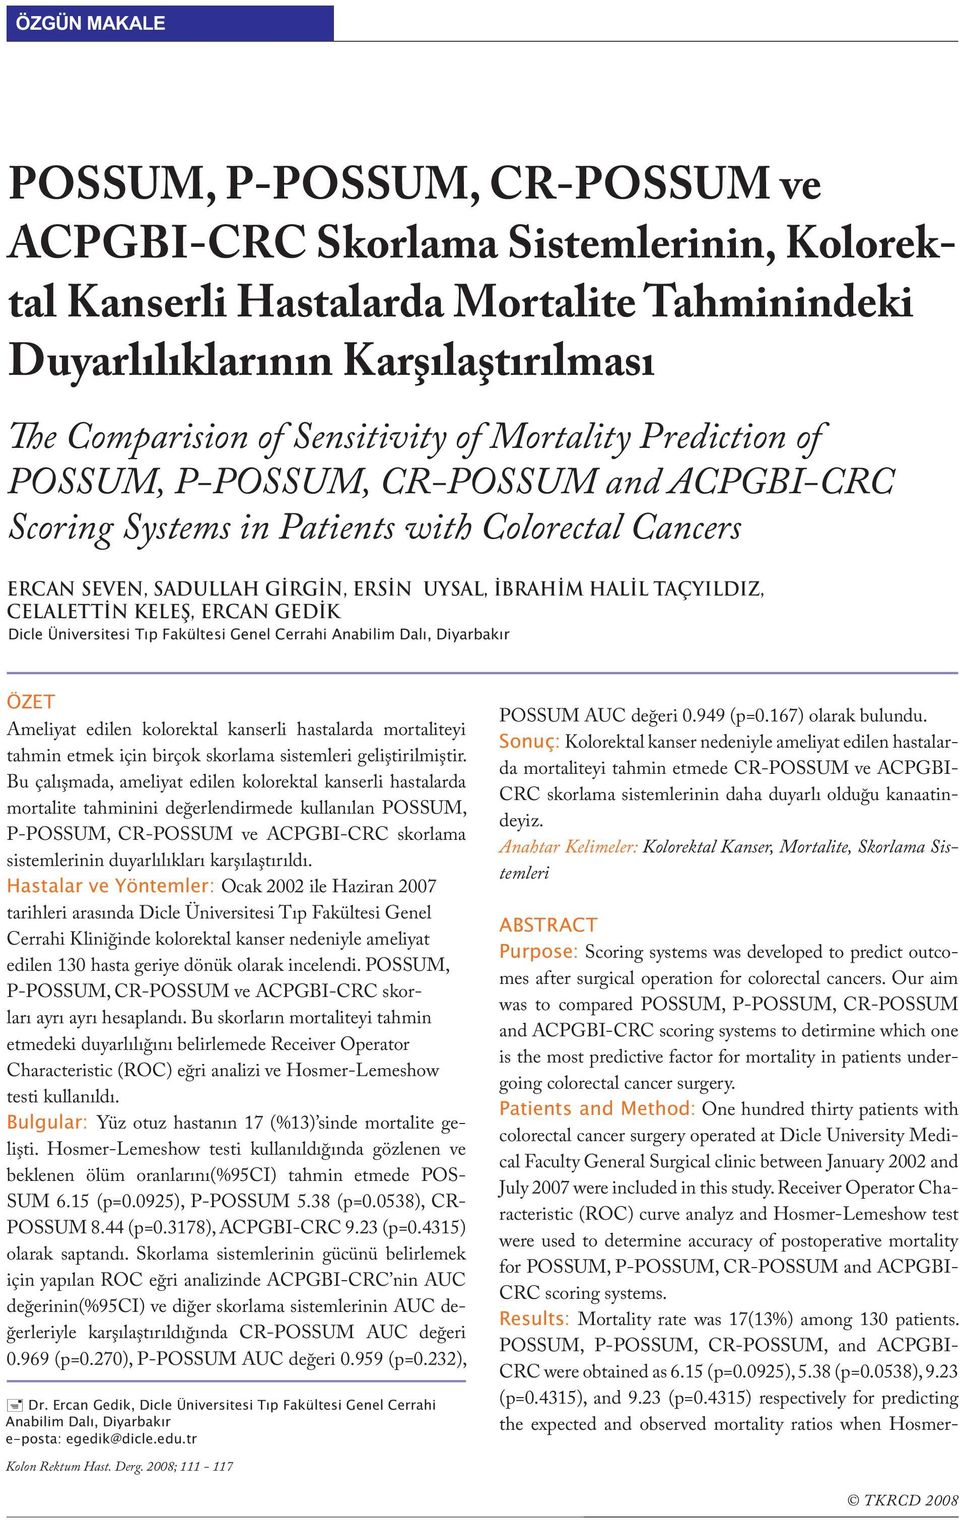 Mortality Prediction of POSSUM, P-POSSUM, CR-POSSUM and ACPGBI-CRC Scoring Systems in Patients with Colorectal Cancers ERCAN SEVEN, SADULLAH GİRGİN, ERSİN UYSAL, İBRAHİM HALİL TAÇYILDIZ, CELALETTİN